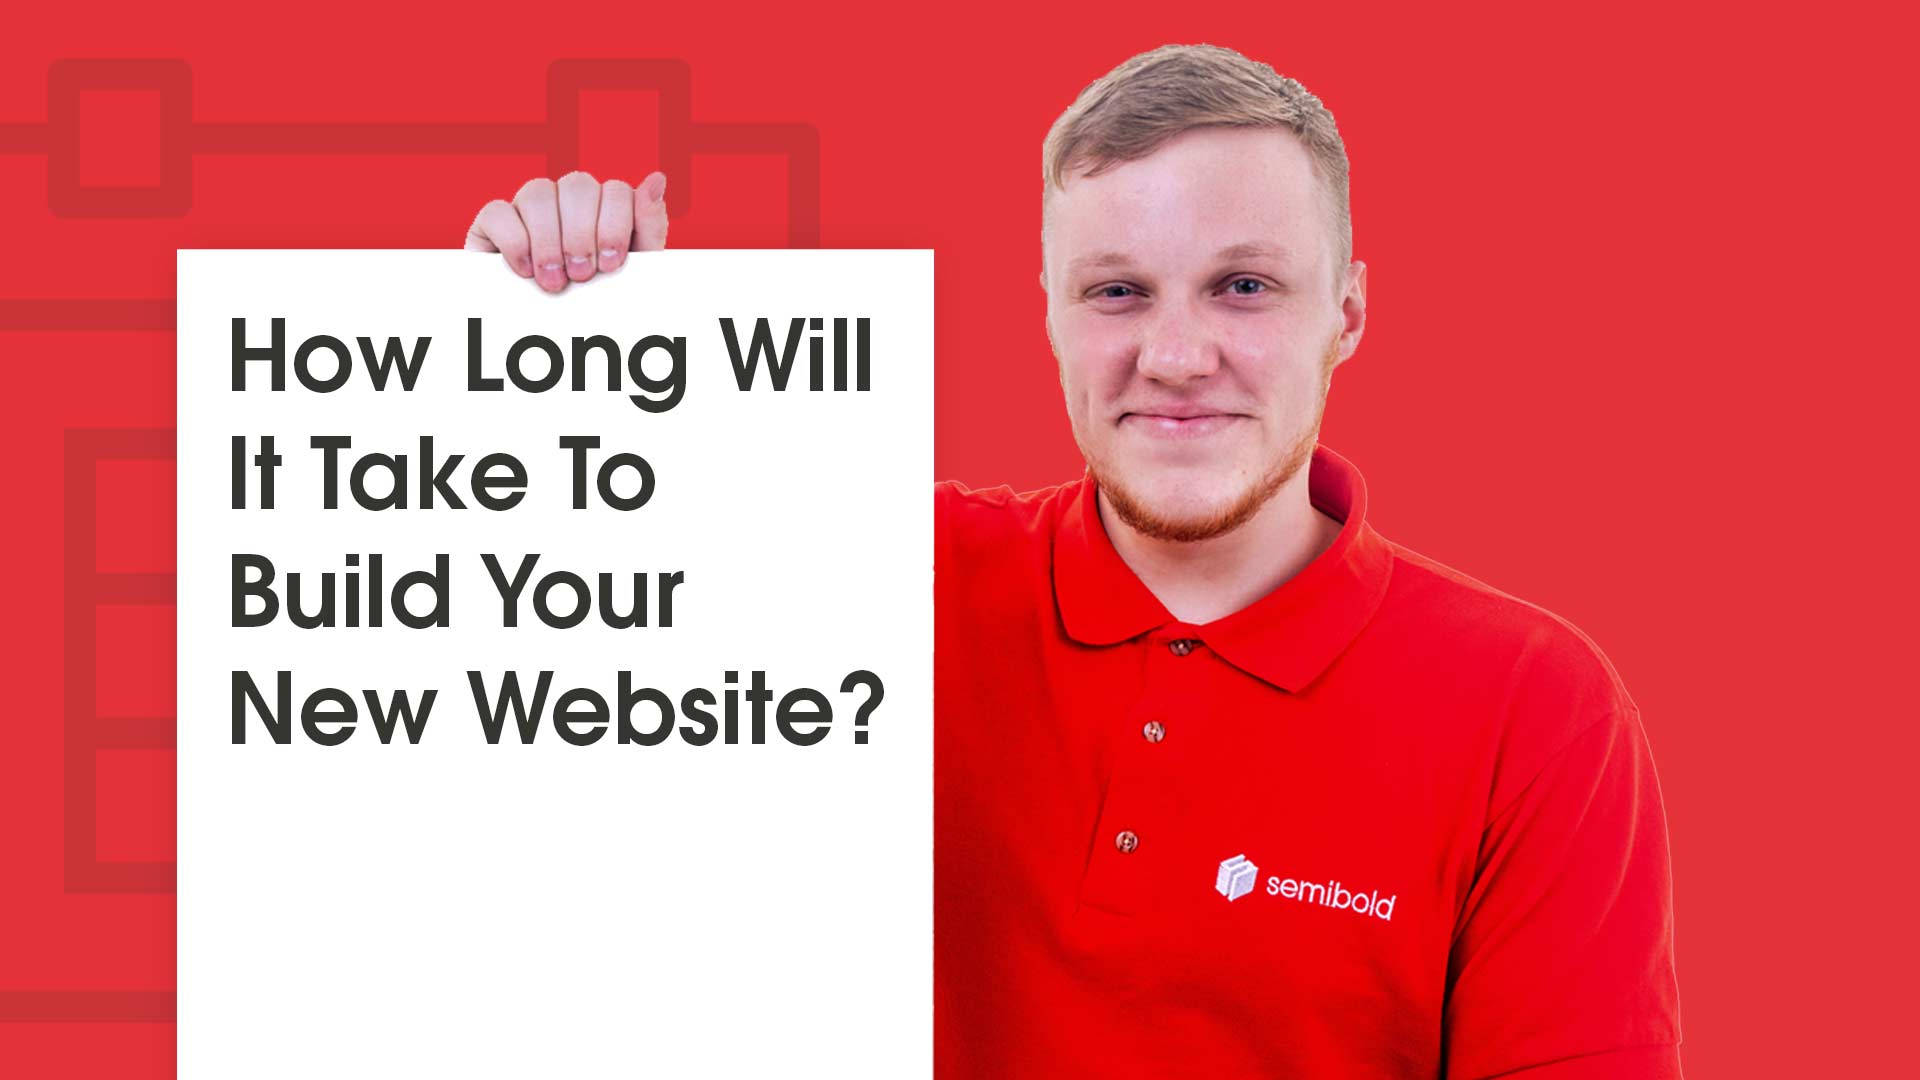 How Long Will It Take To Build Your New Website? 4